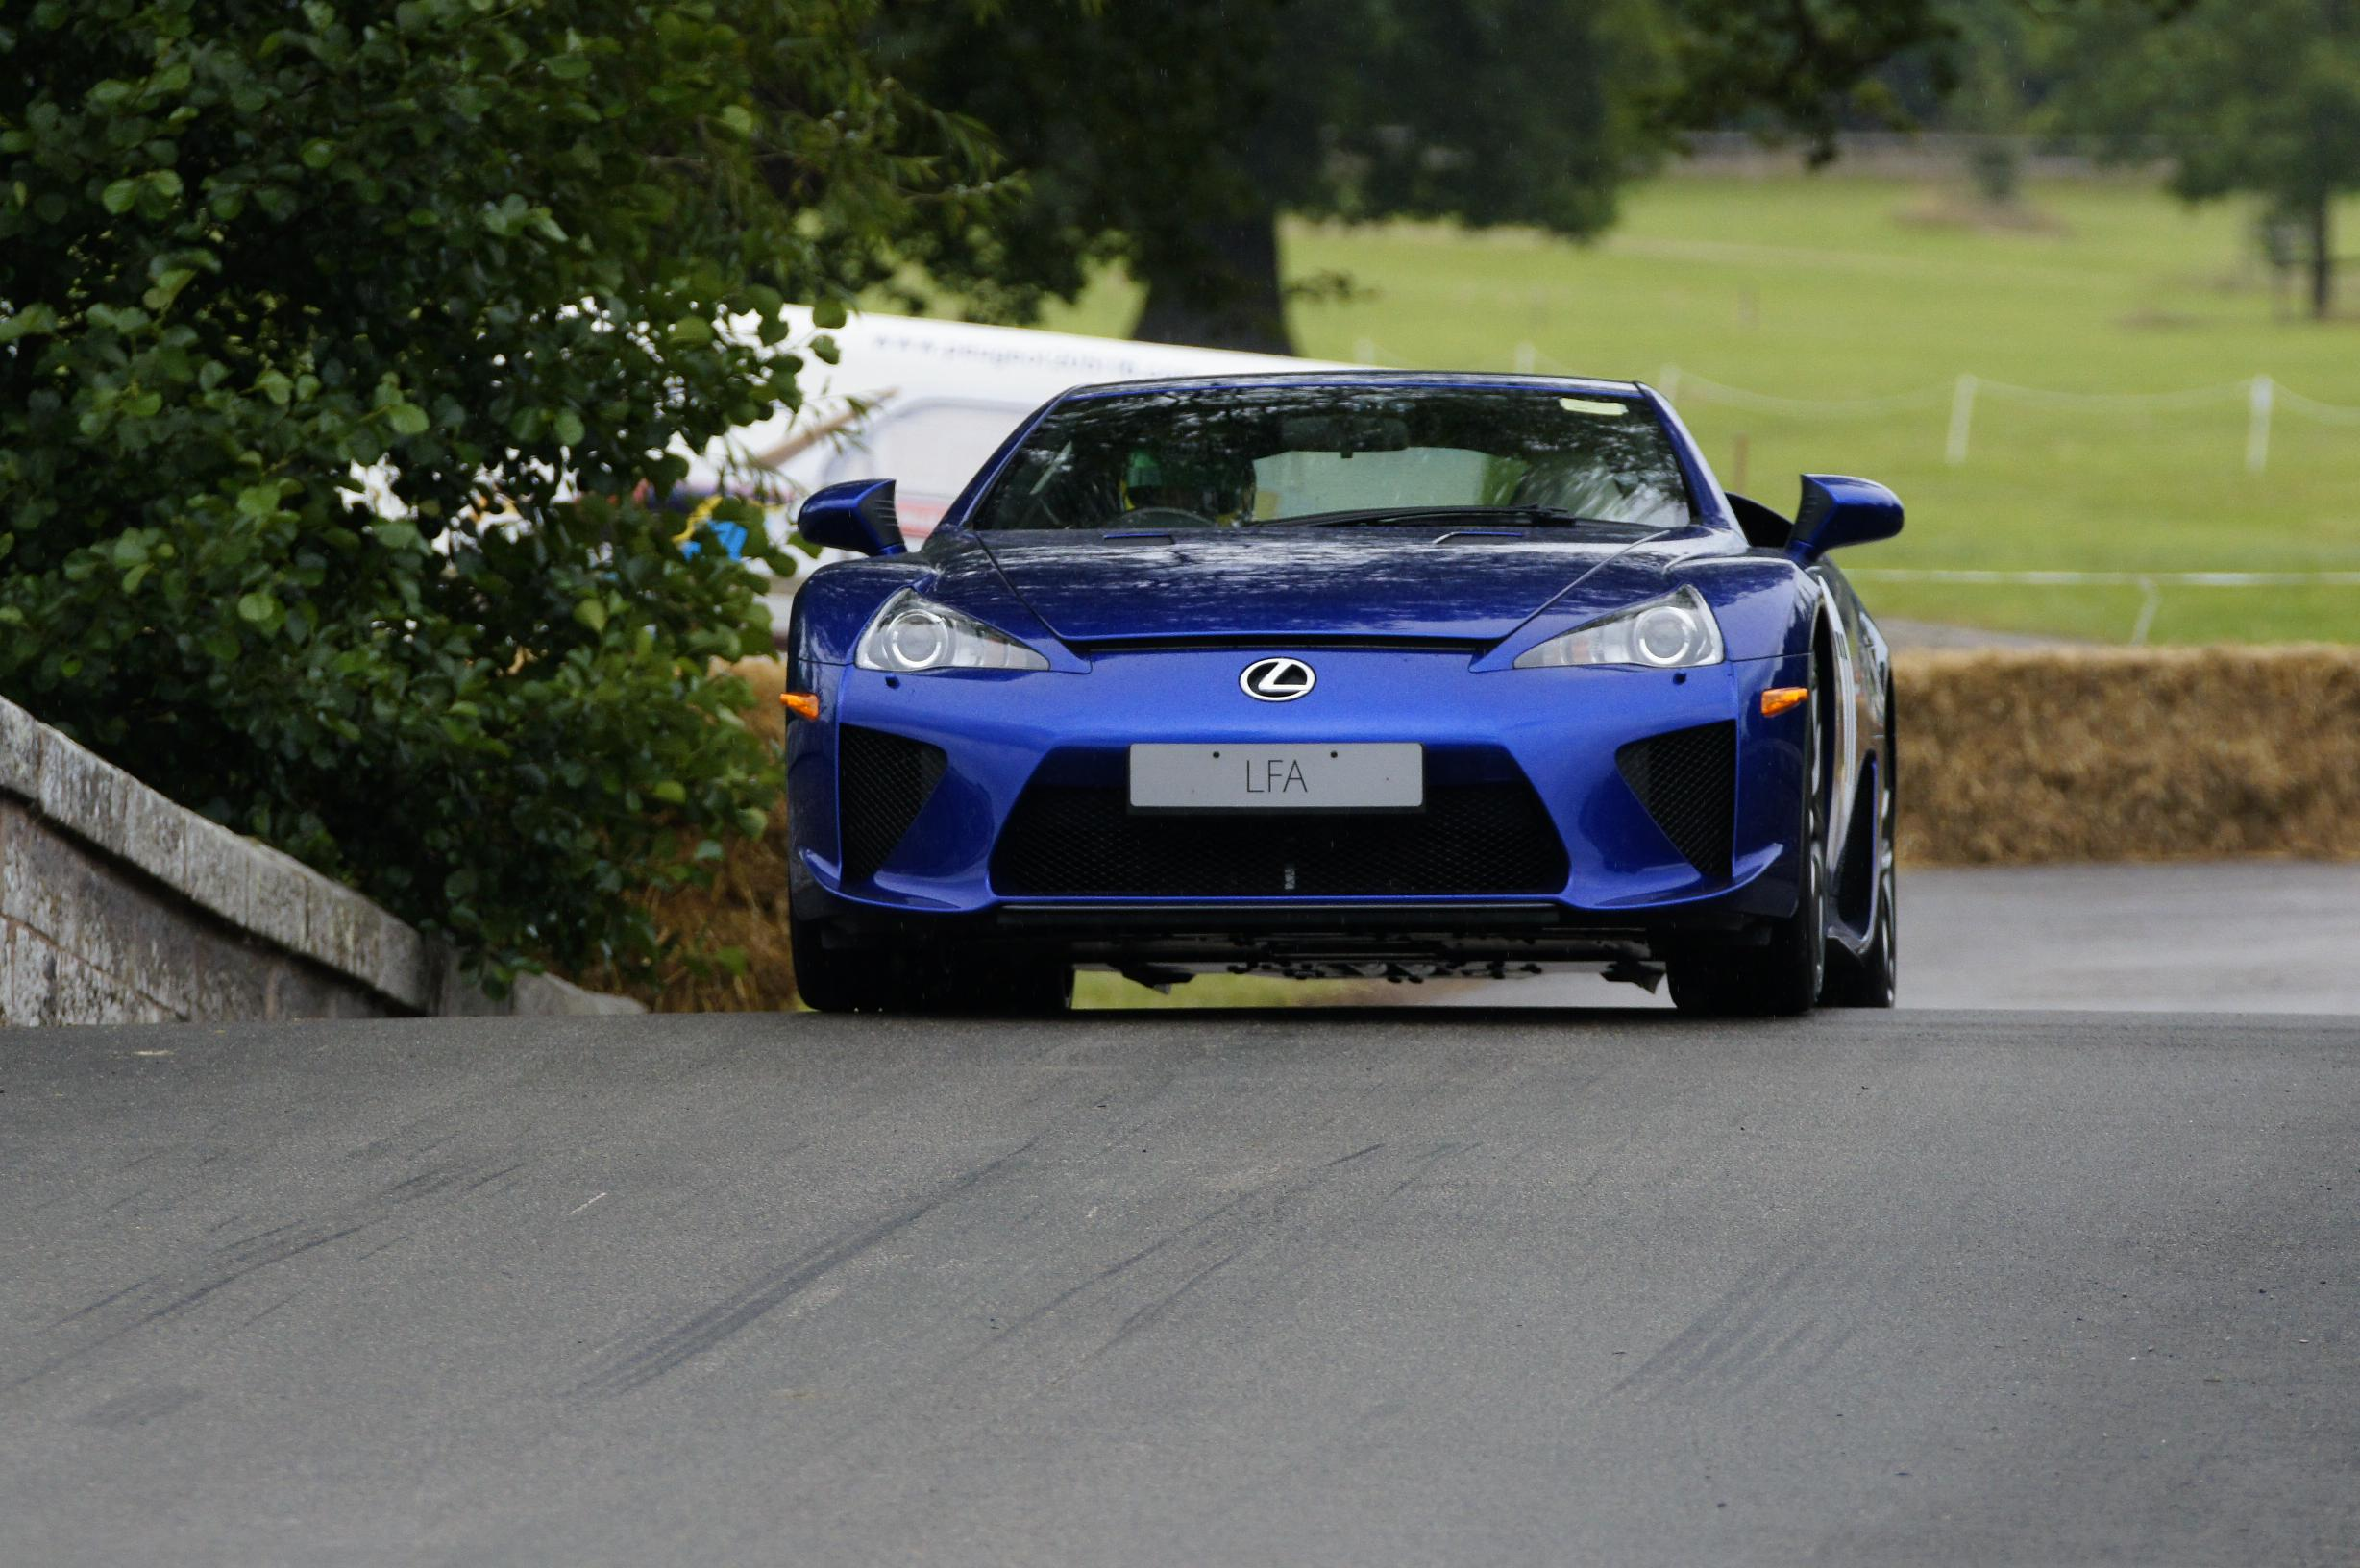 Cholmondeley has plenty of supercars - but not enough variety